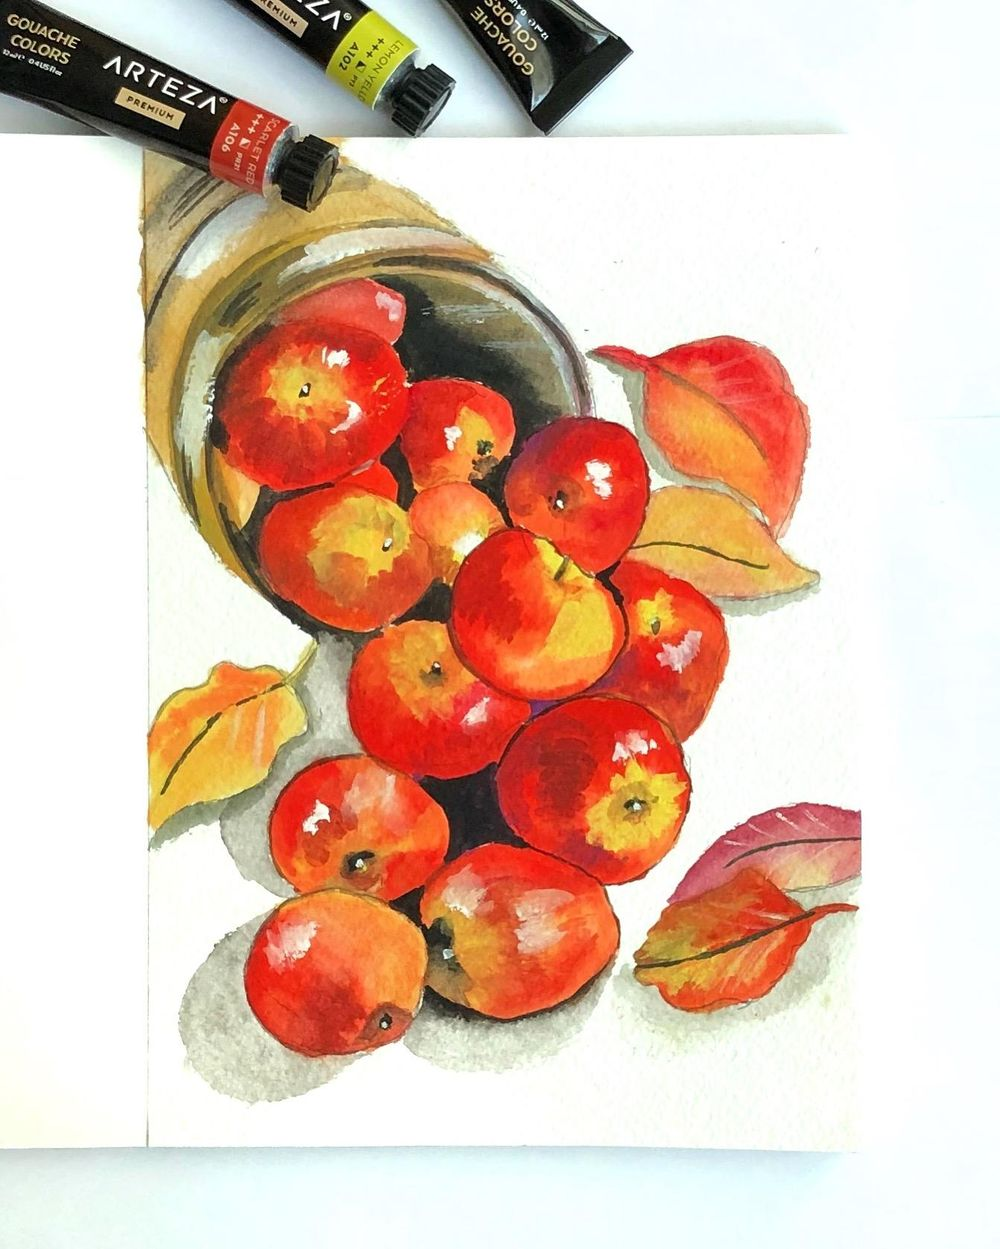 Apples - image 1 - student project